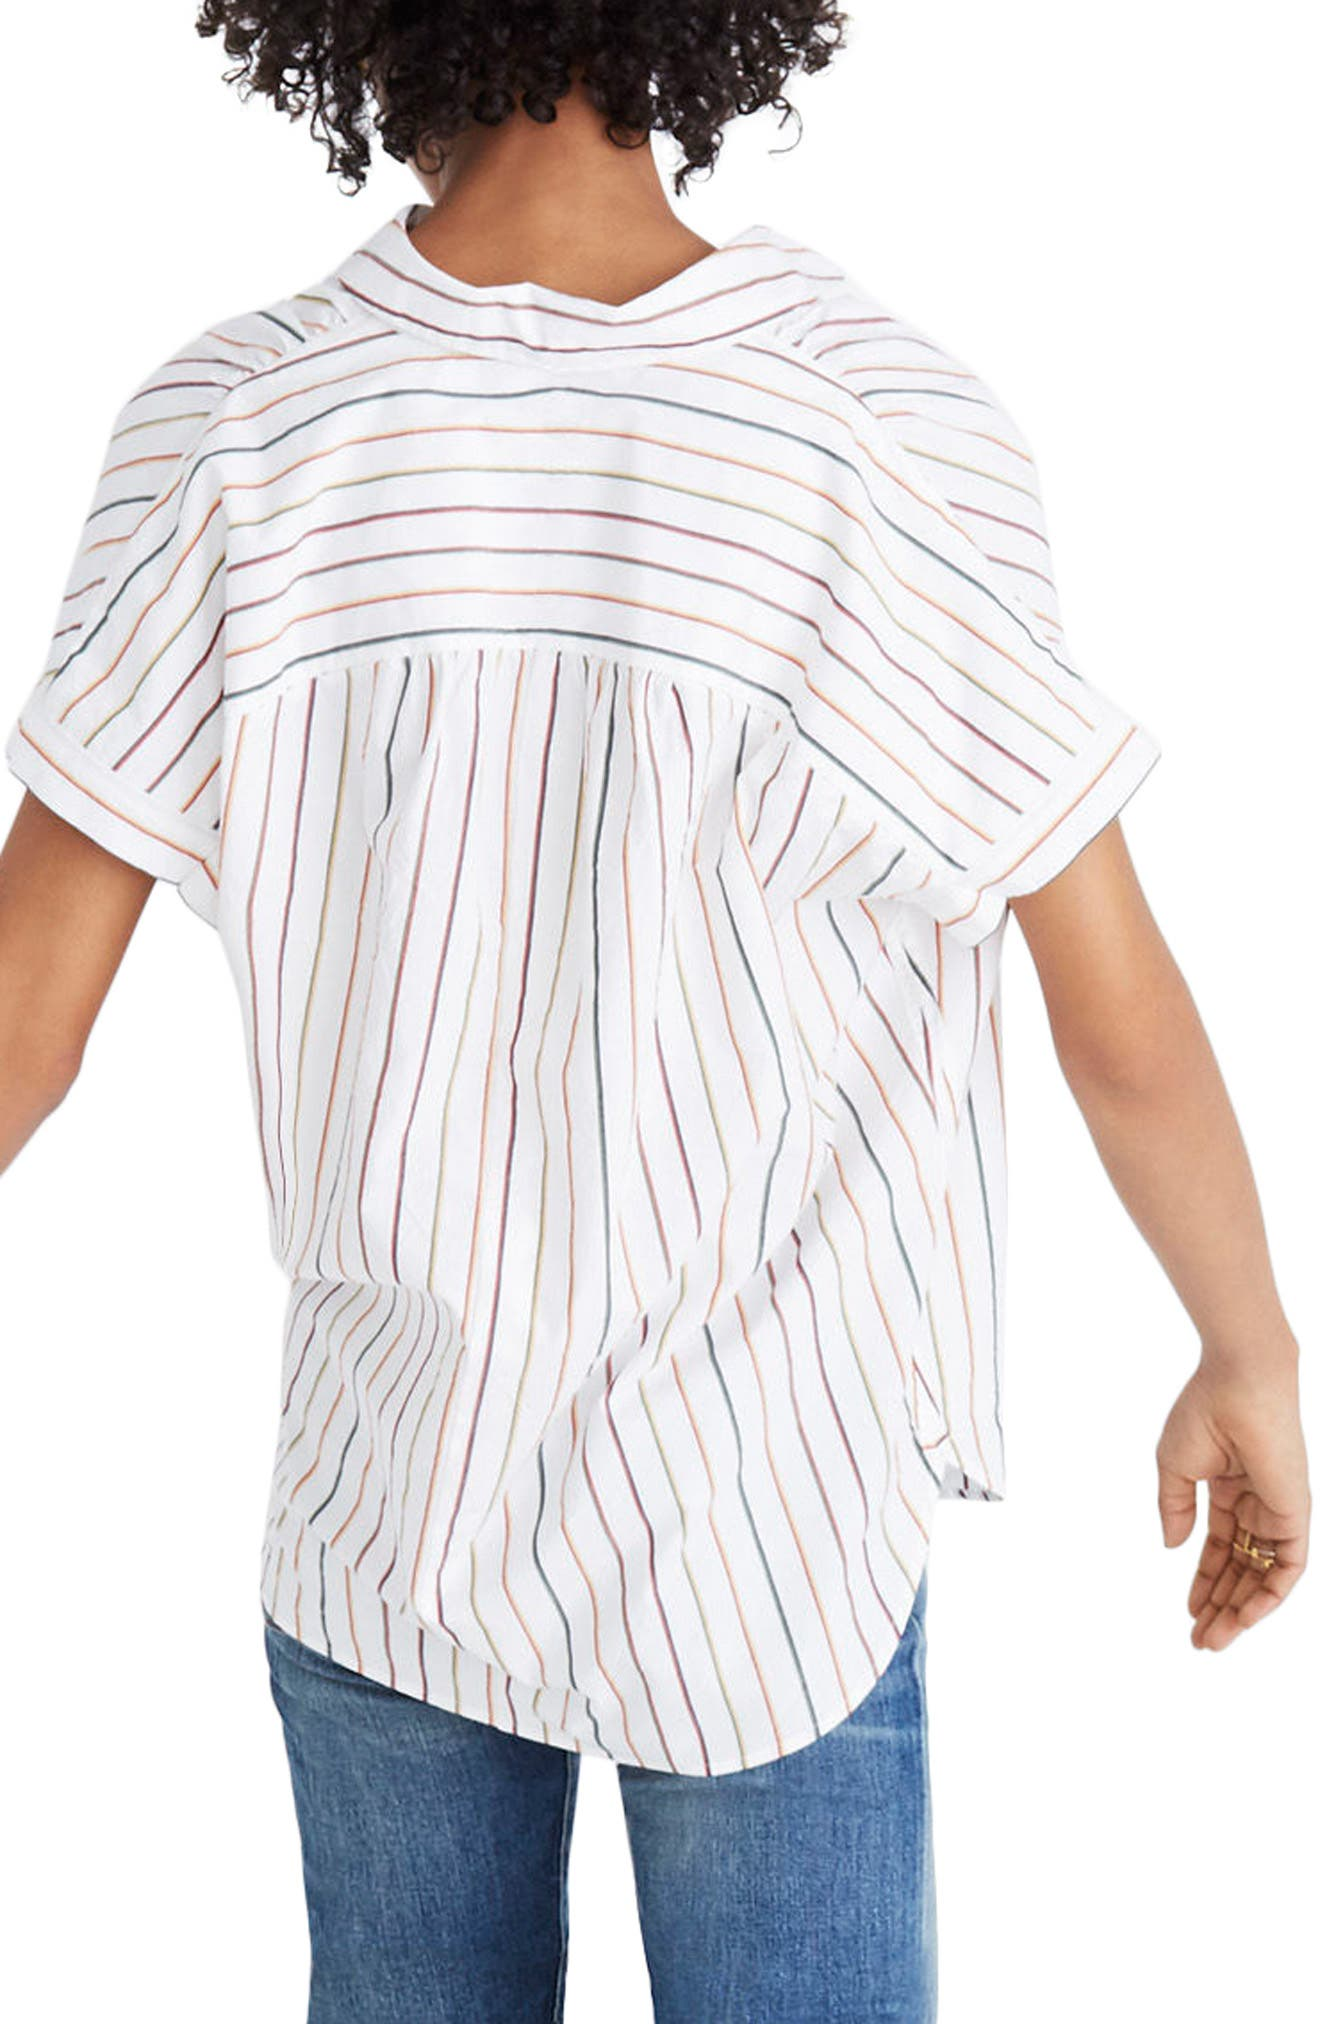 Central Sadie Stripe Shirt,                             Main thumbnail 1, color,                             100